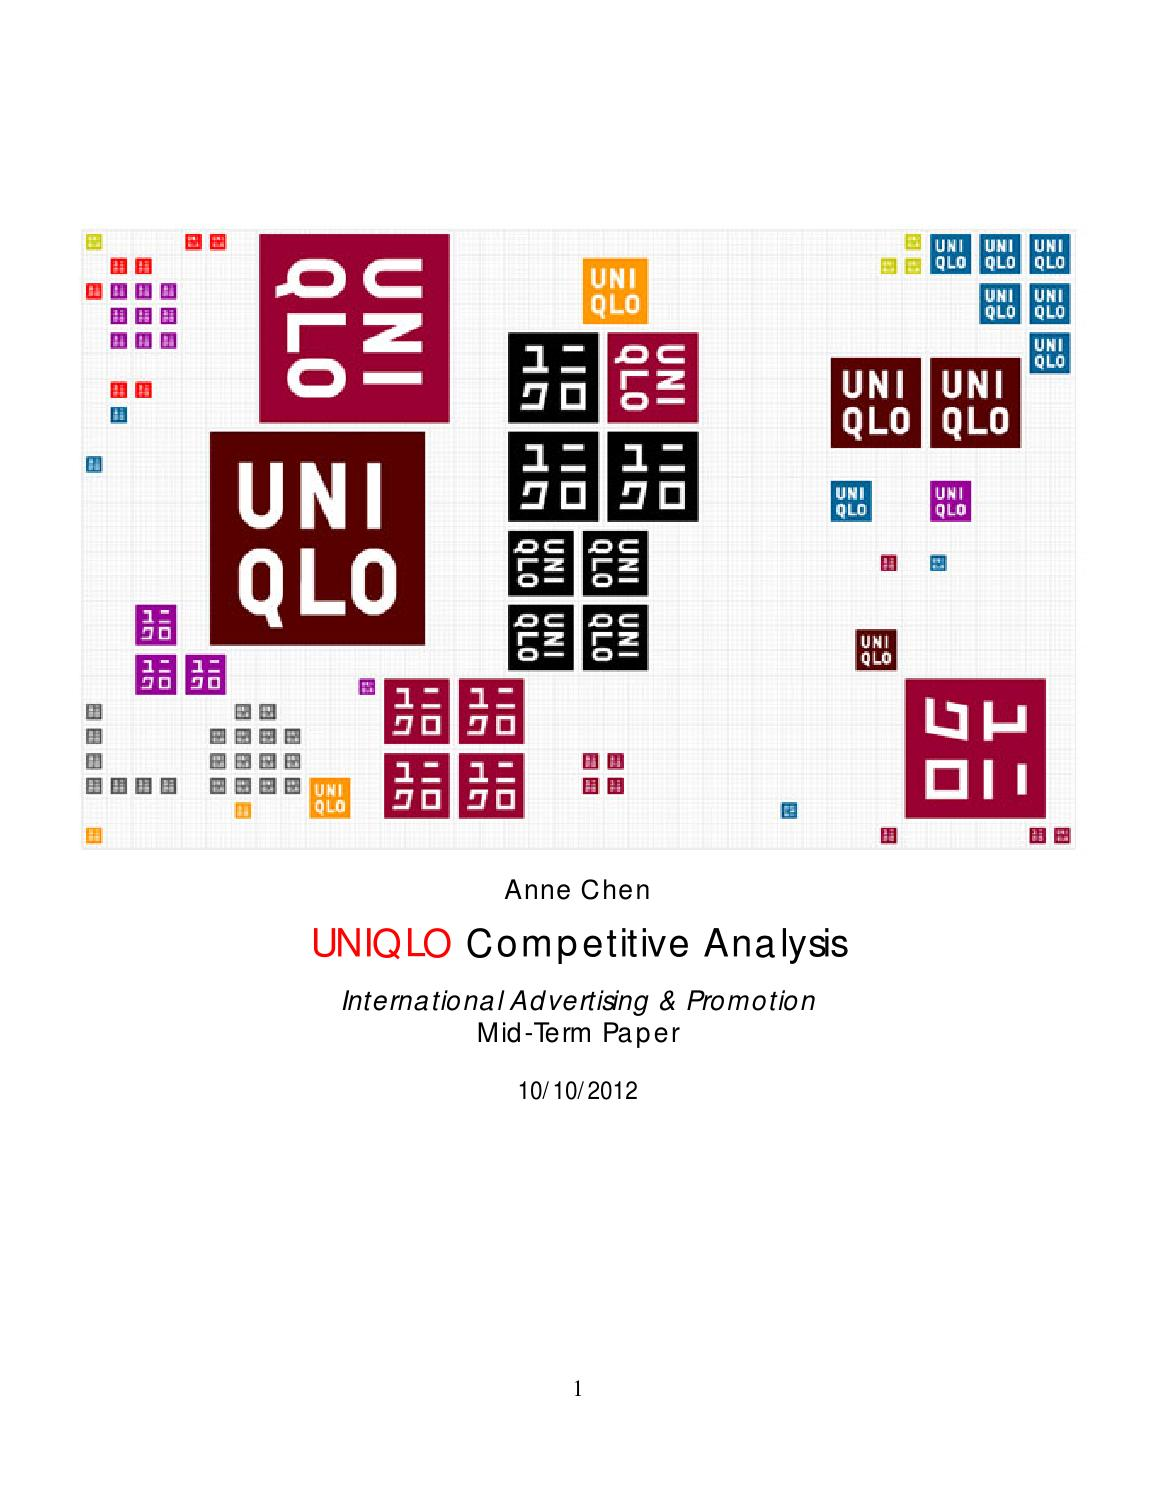 strategic initiative uniqlo by nicole drain issuu uniqlo competitive analysis